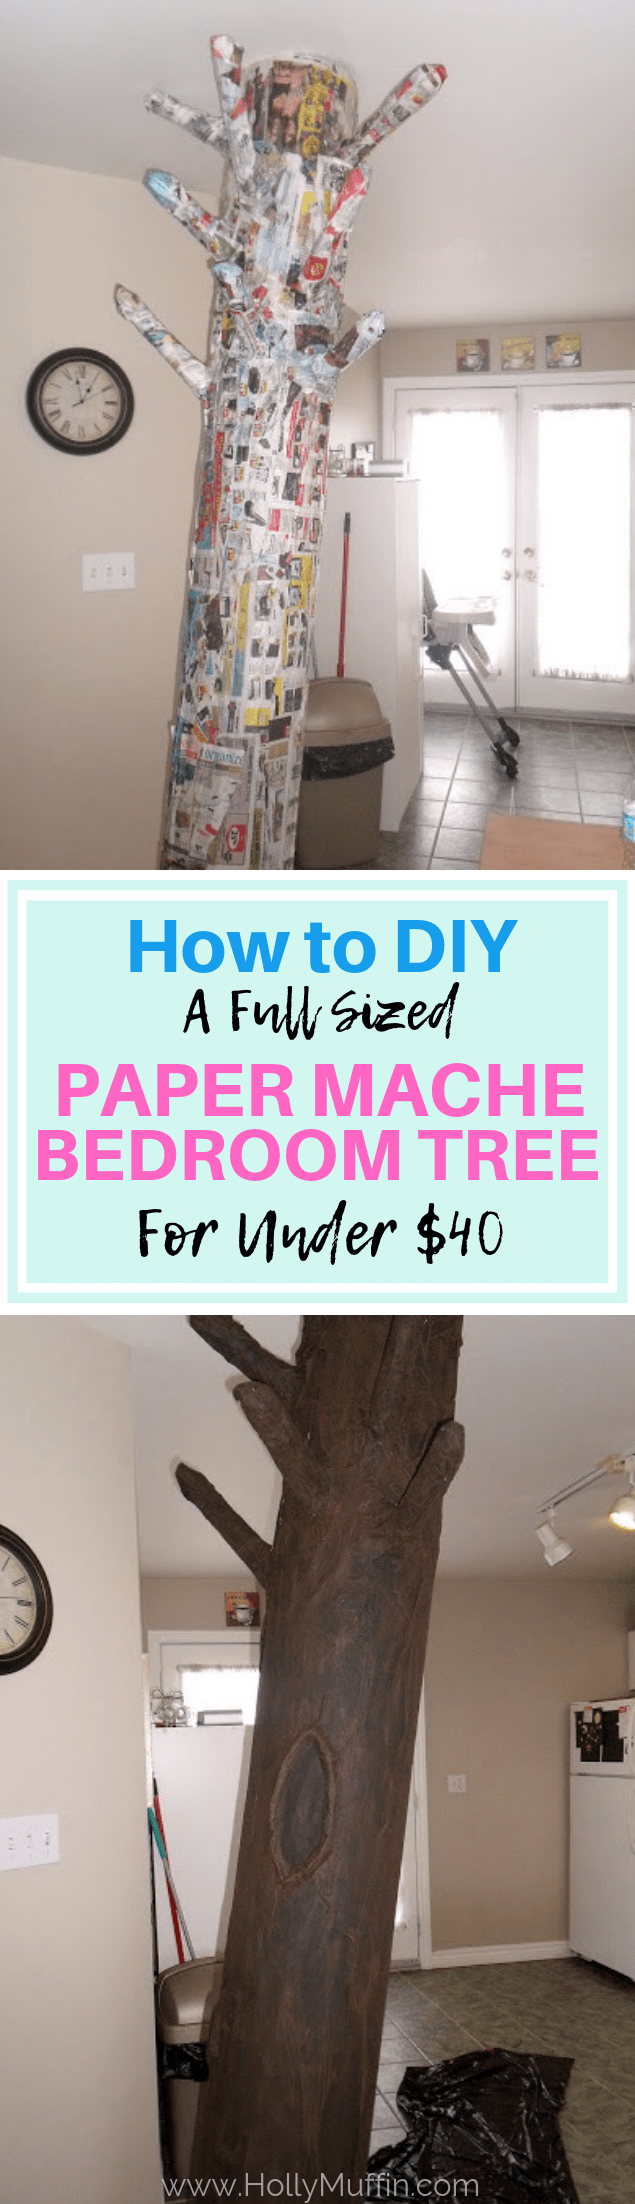 DIY a full sized paper mache bedroom tree! A super inexpensive way to add something fun to a room! #roomdecor #kidsroom